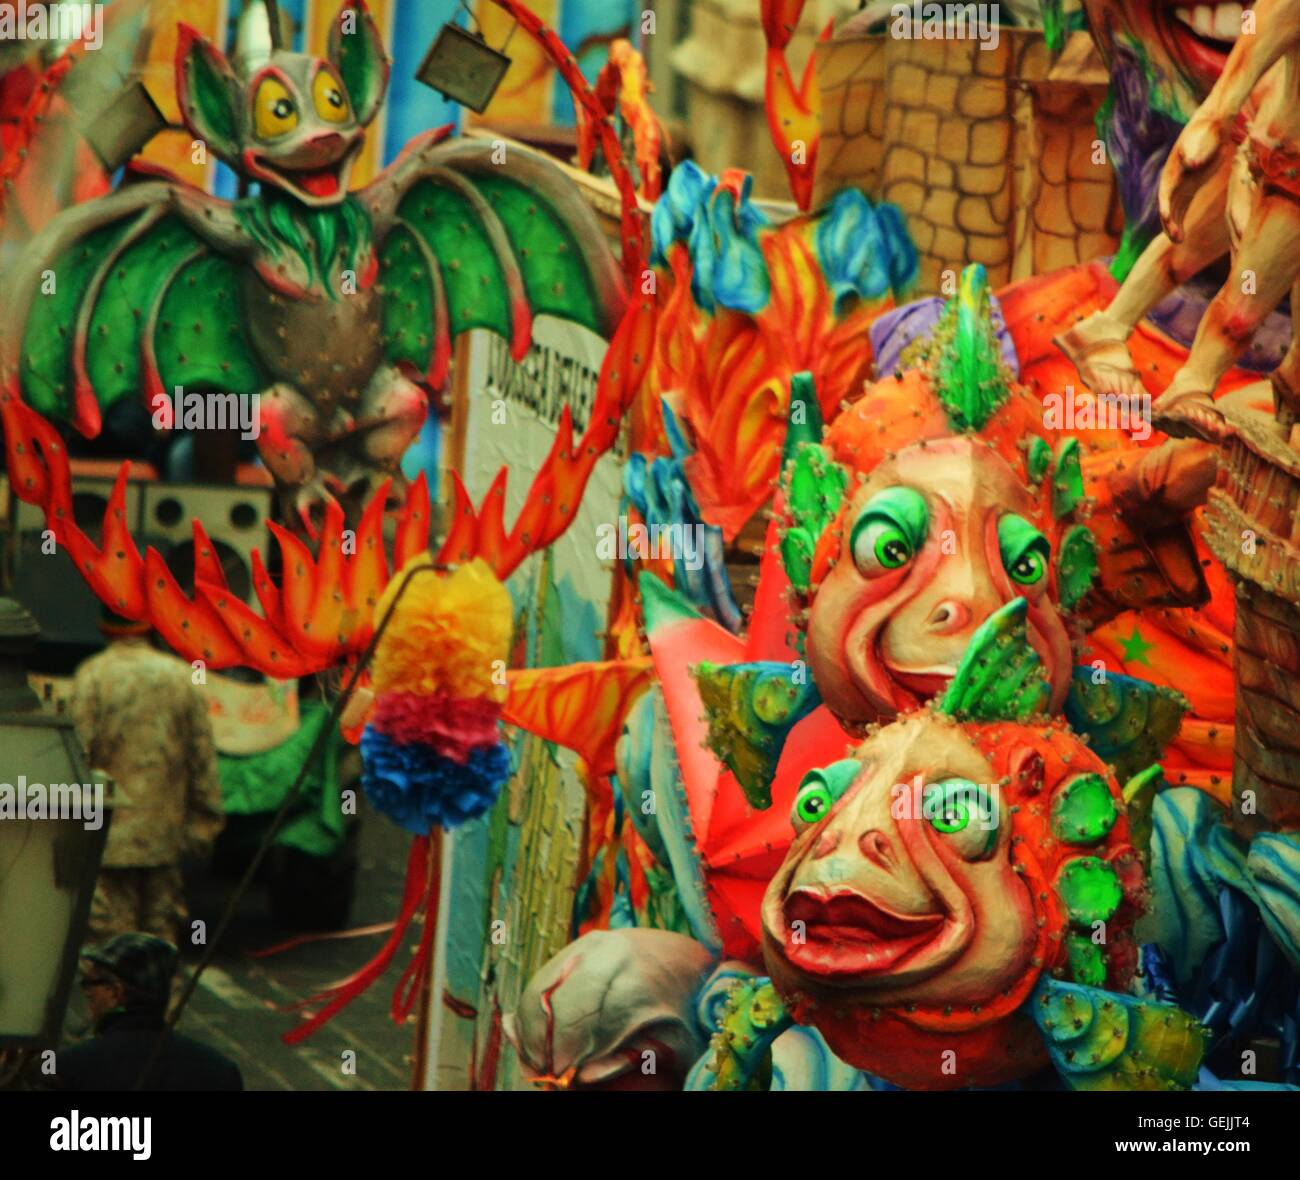 Brightly colored carnival float at Palazzuolo in Ragusa, Sicily ...